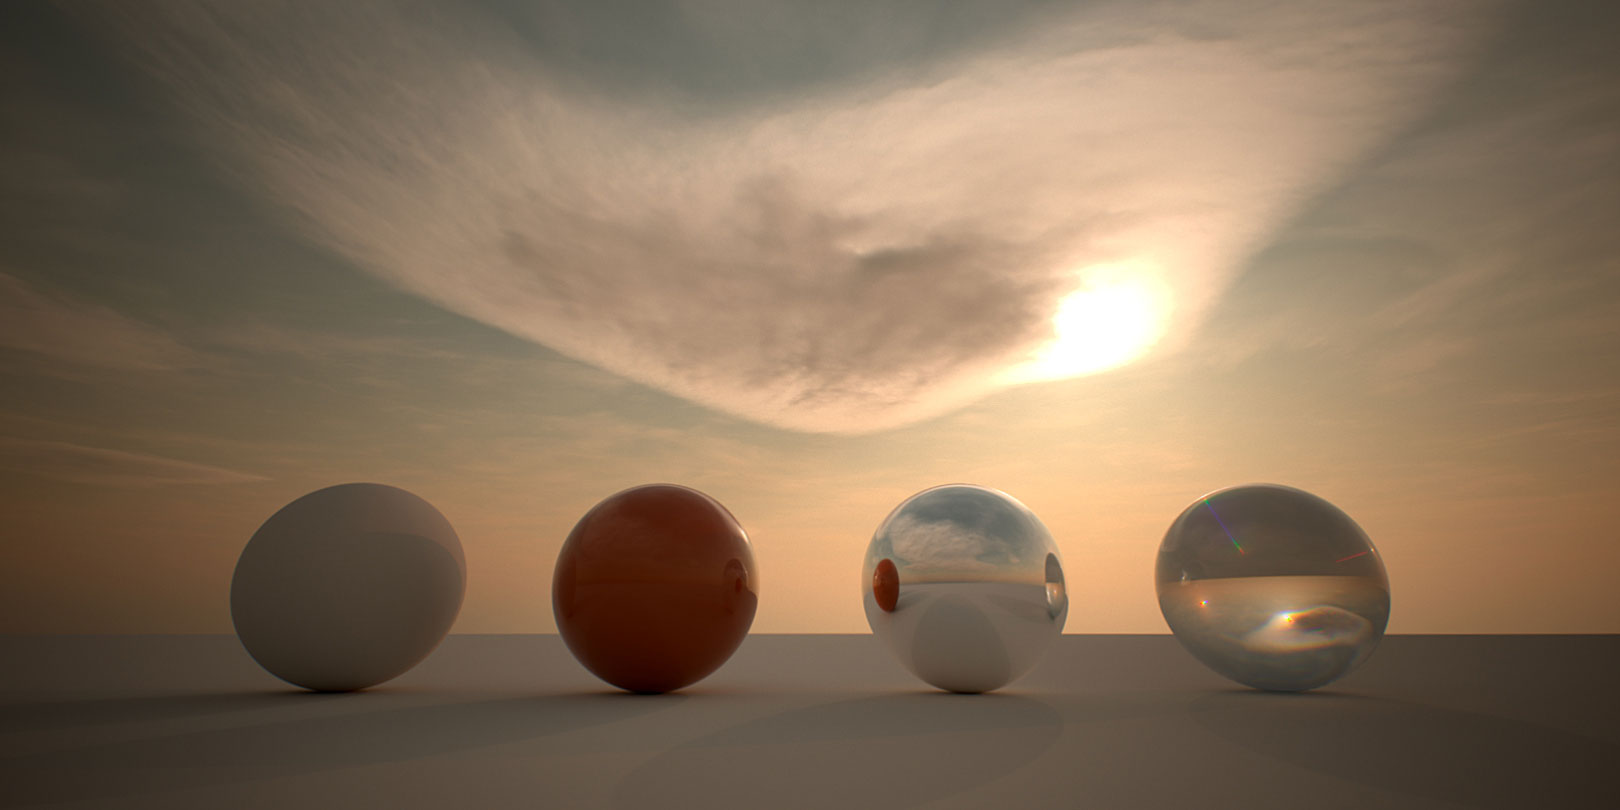 CG HDRI / Alien Skies from helloluxx by Shawn Astrom